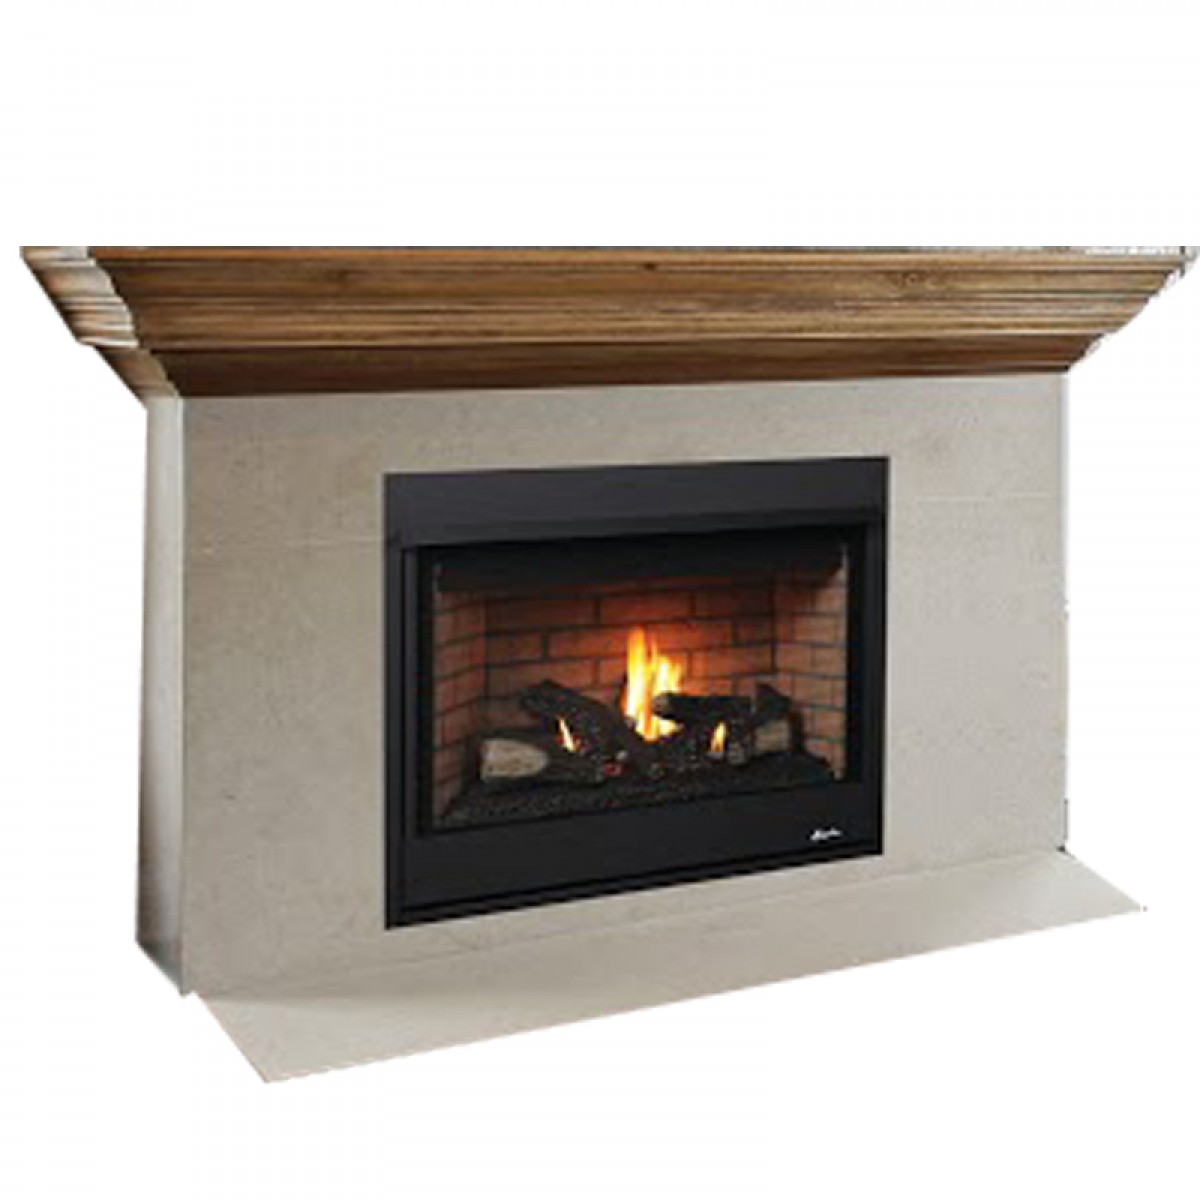 Fireplace Vent Ihp Superior Drt2000 Direct Vent Gas Fireplace